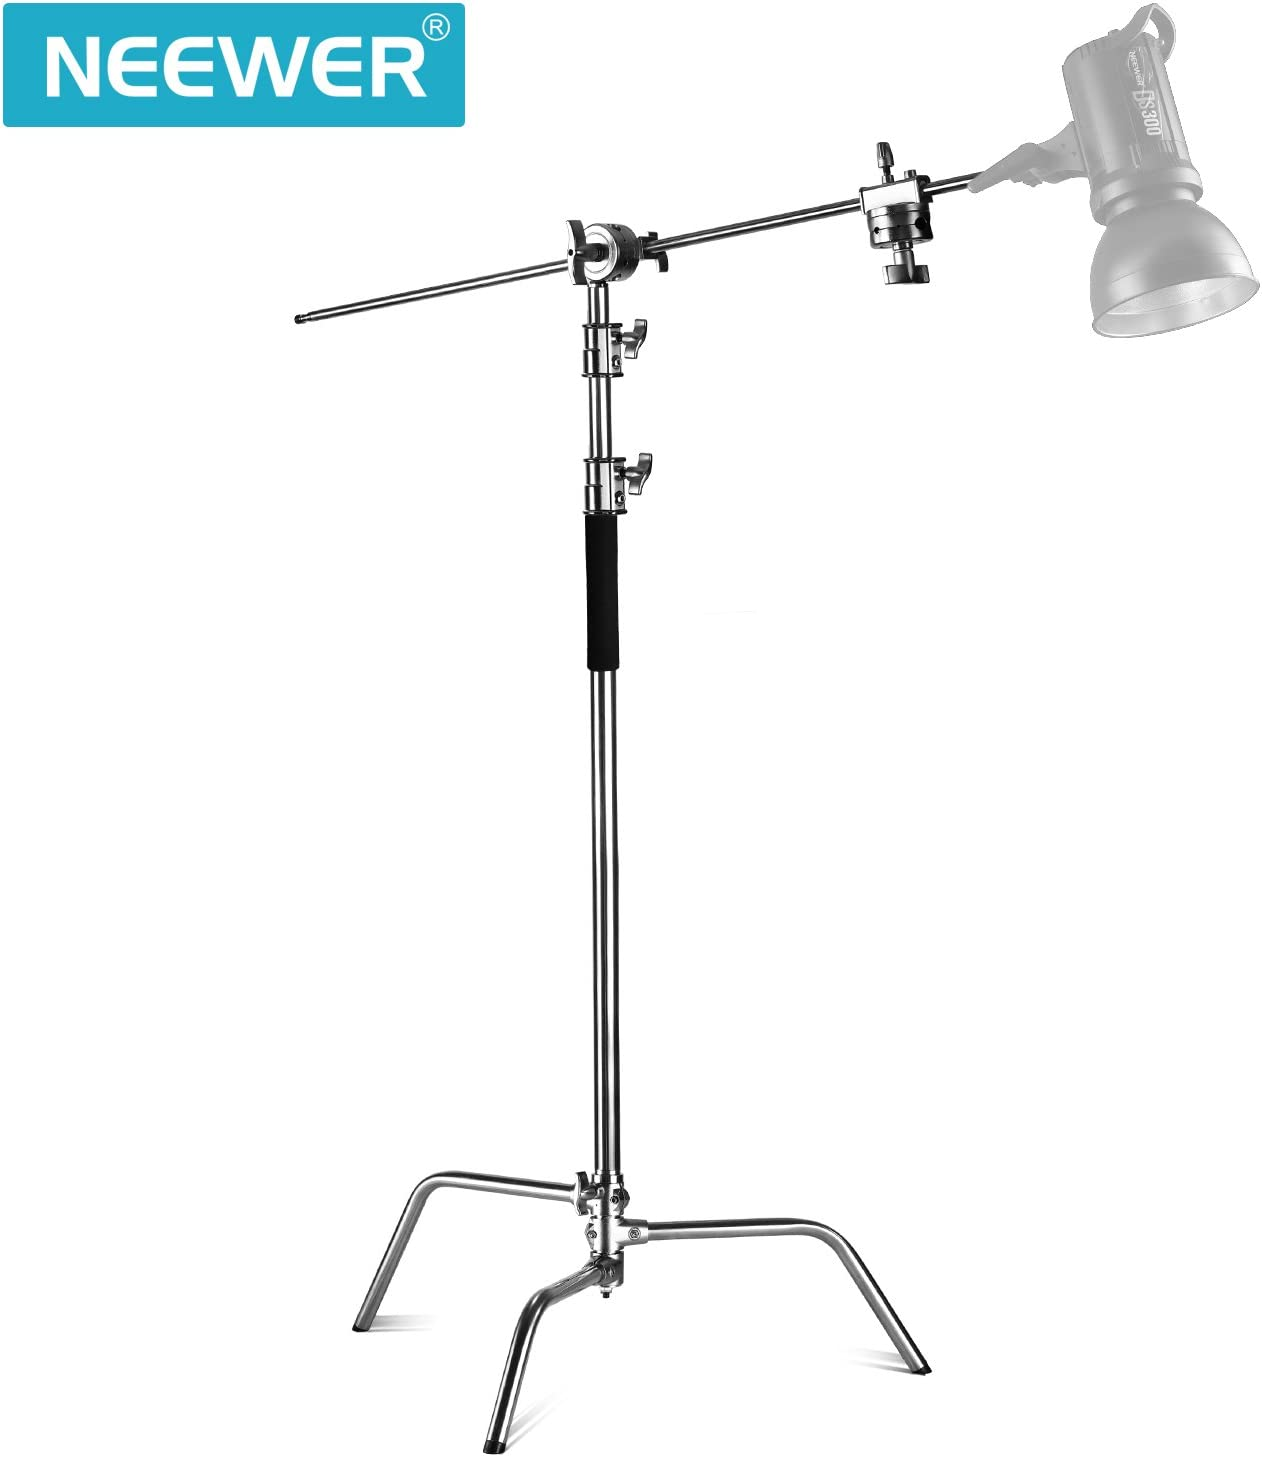 Umbrellas 58.6-121.6 inches Stand with One Adjustable Leg for Photography Reflectors Neewer Upgraded Heavy Duty Stainless Steel C-Stand with Hold Arm and Grip Head Monolights Softboxes